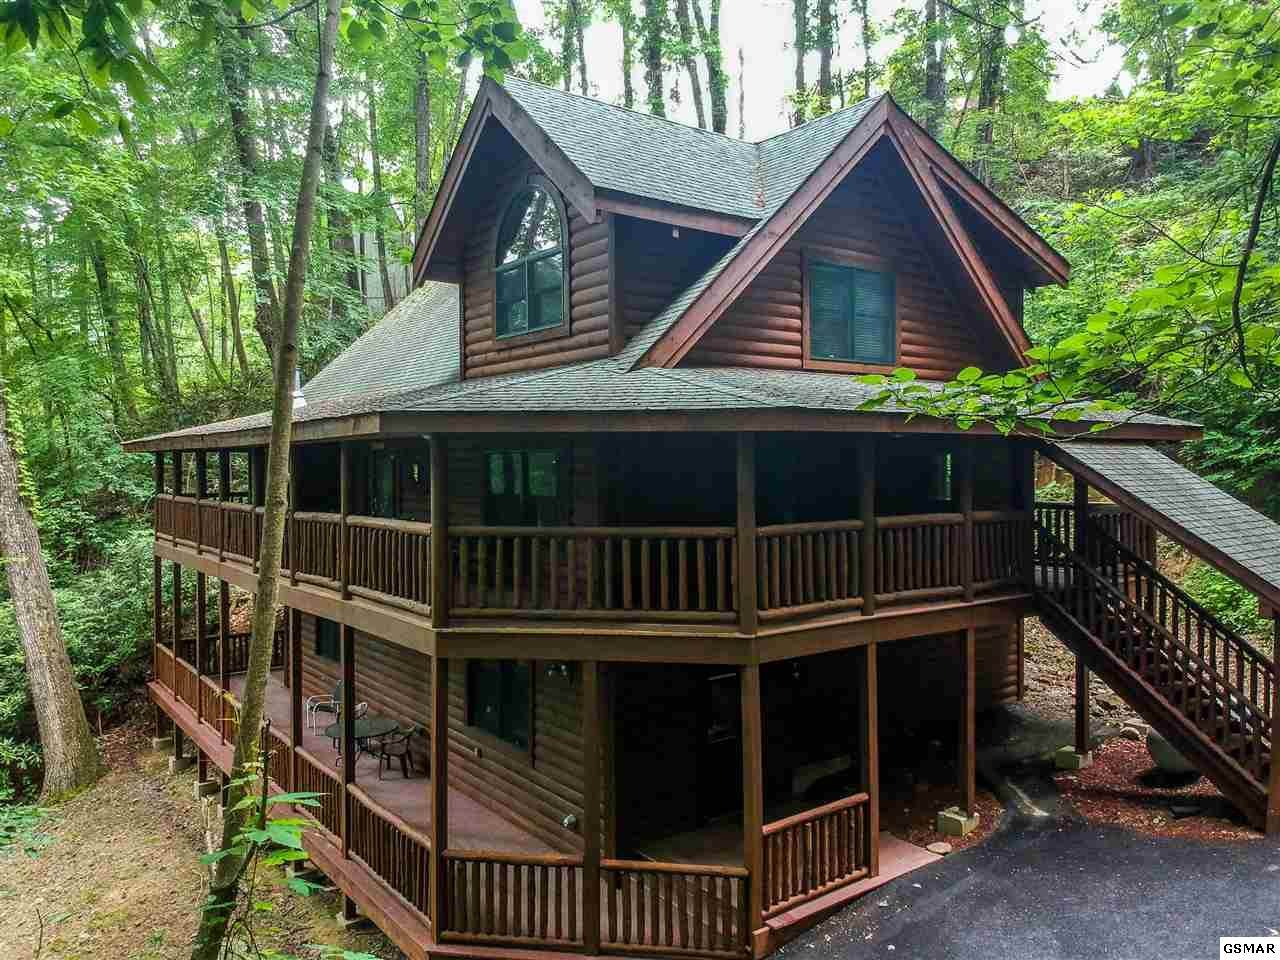 https://bt-photos.global.ssl.fastly.net/gsmar/orig_boomver_1_228816-2.jpg